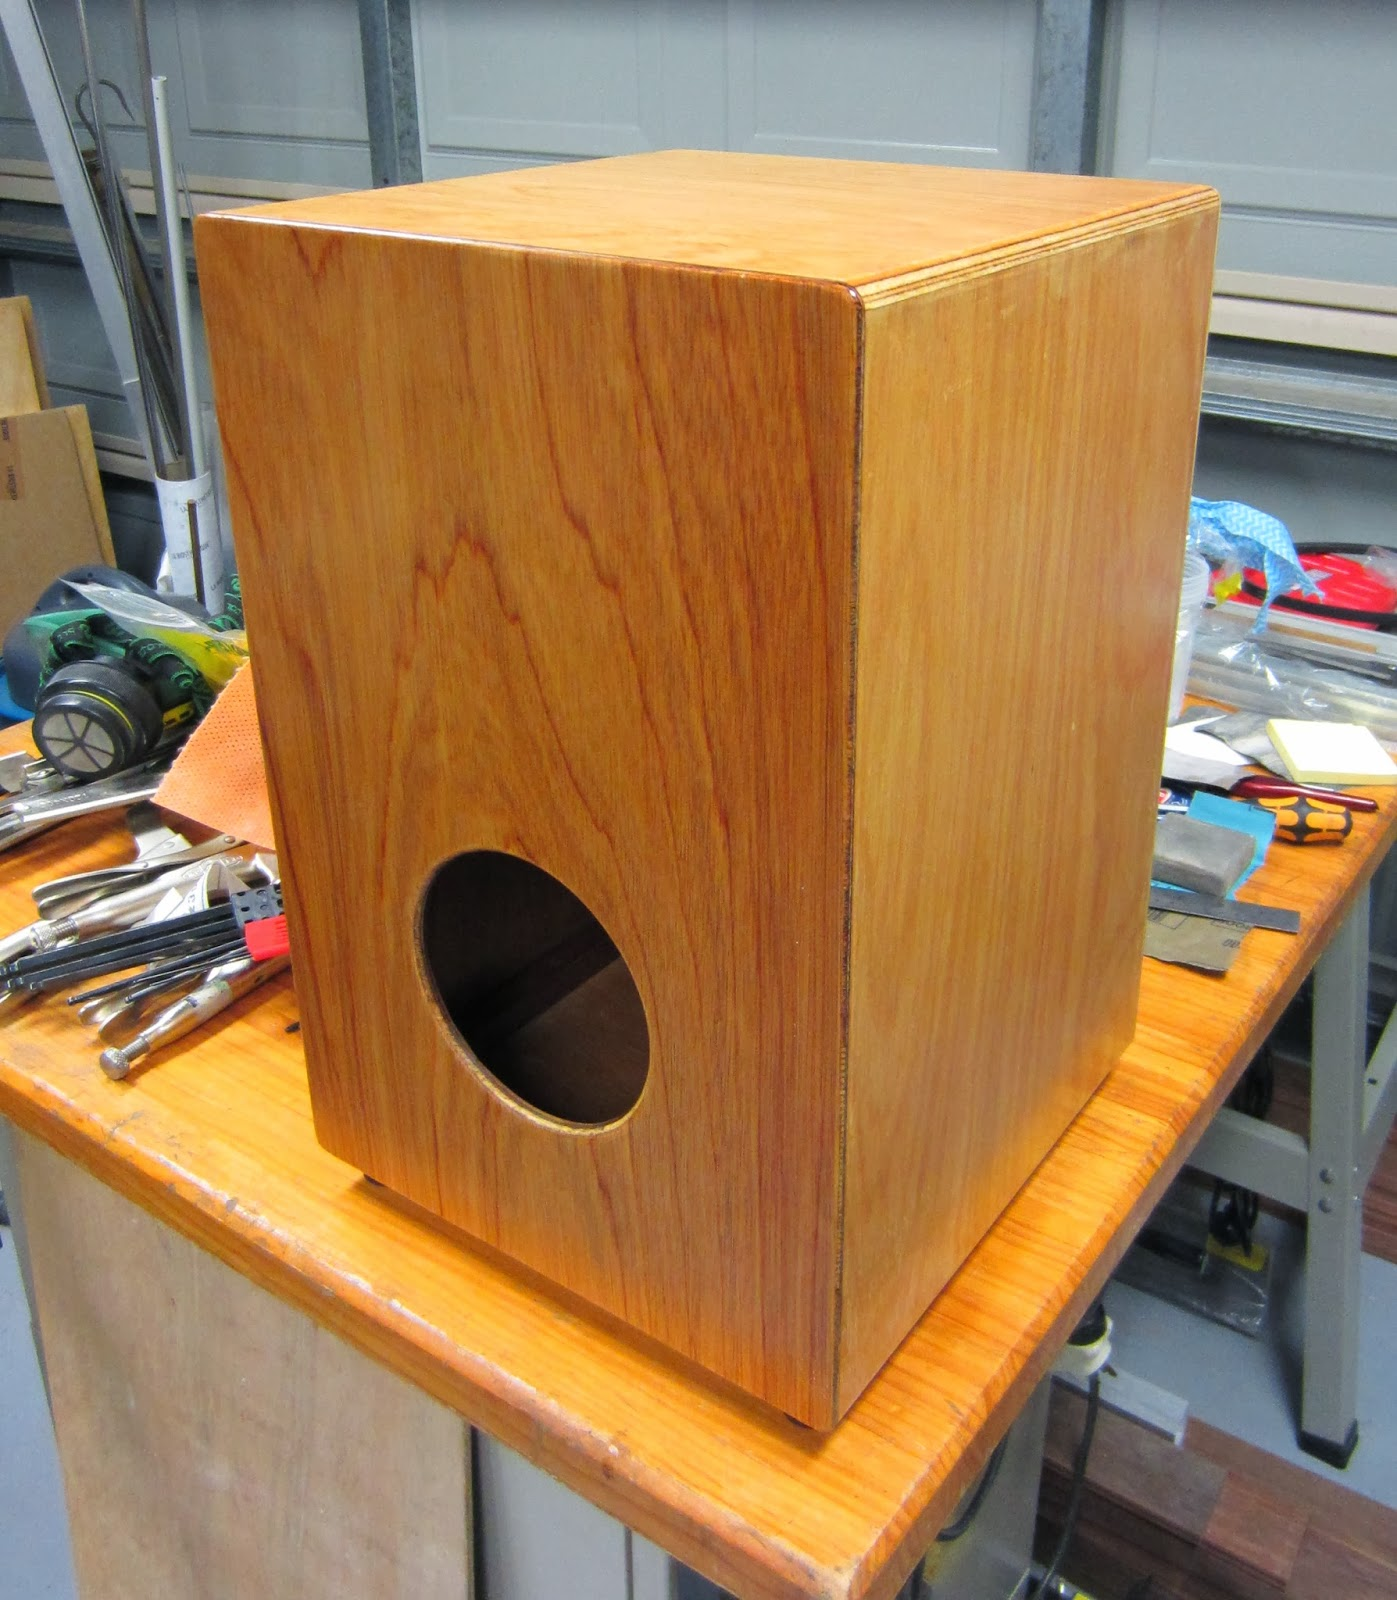 After some assembly work, a cajon emerges from the mess: